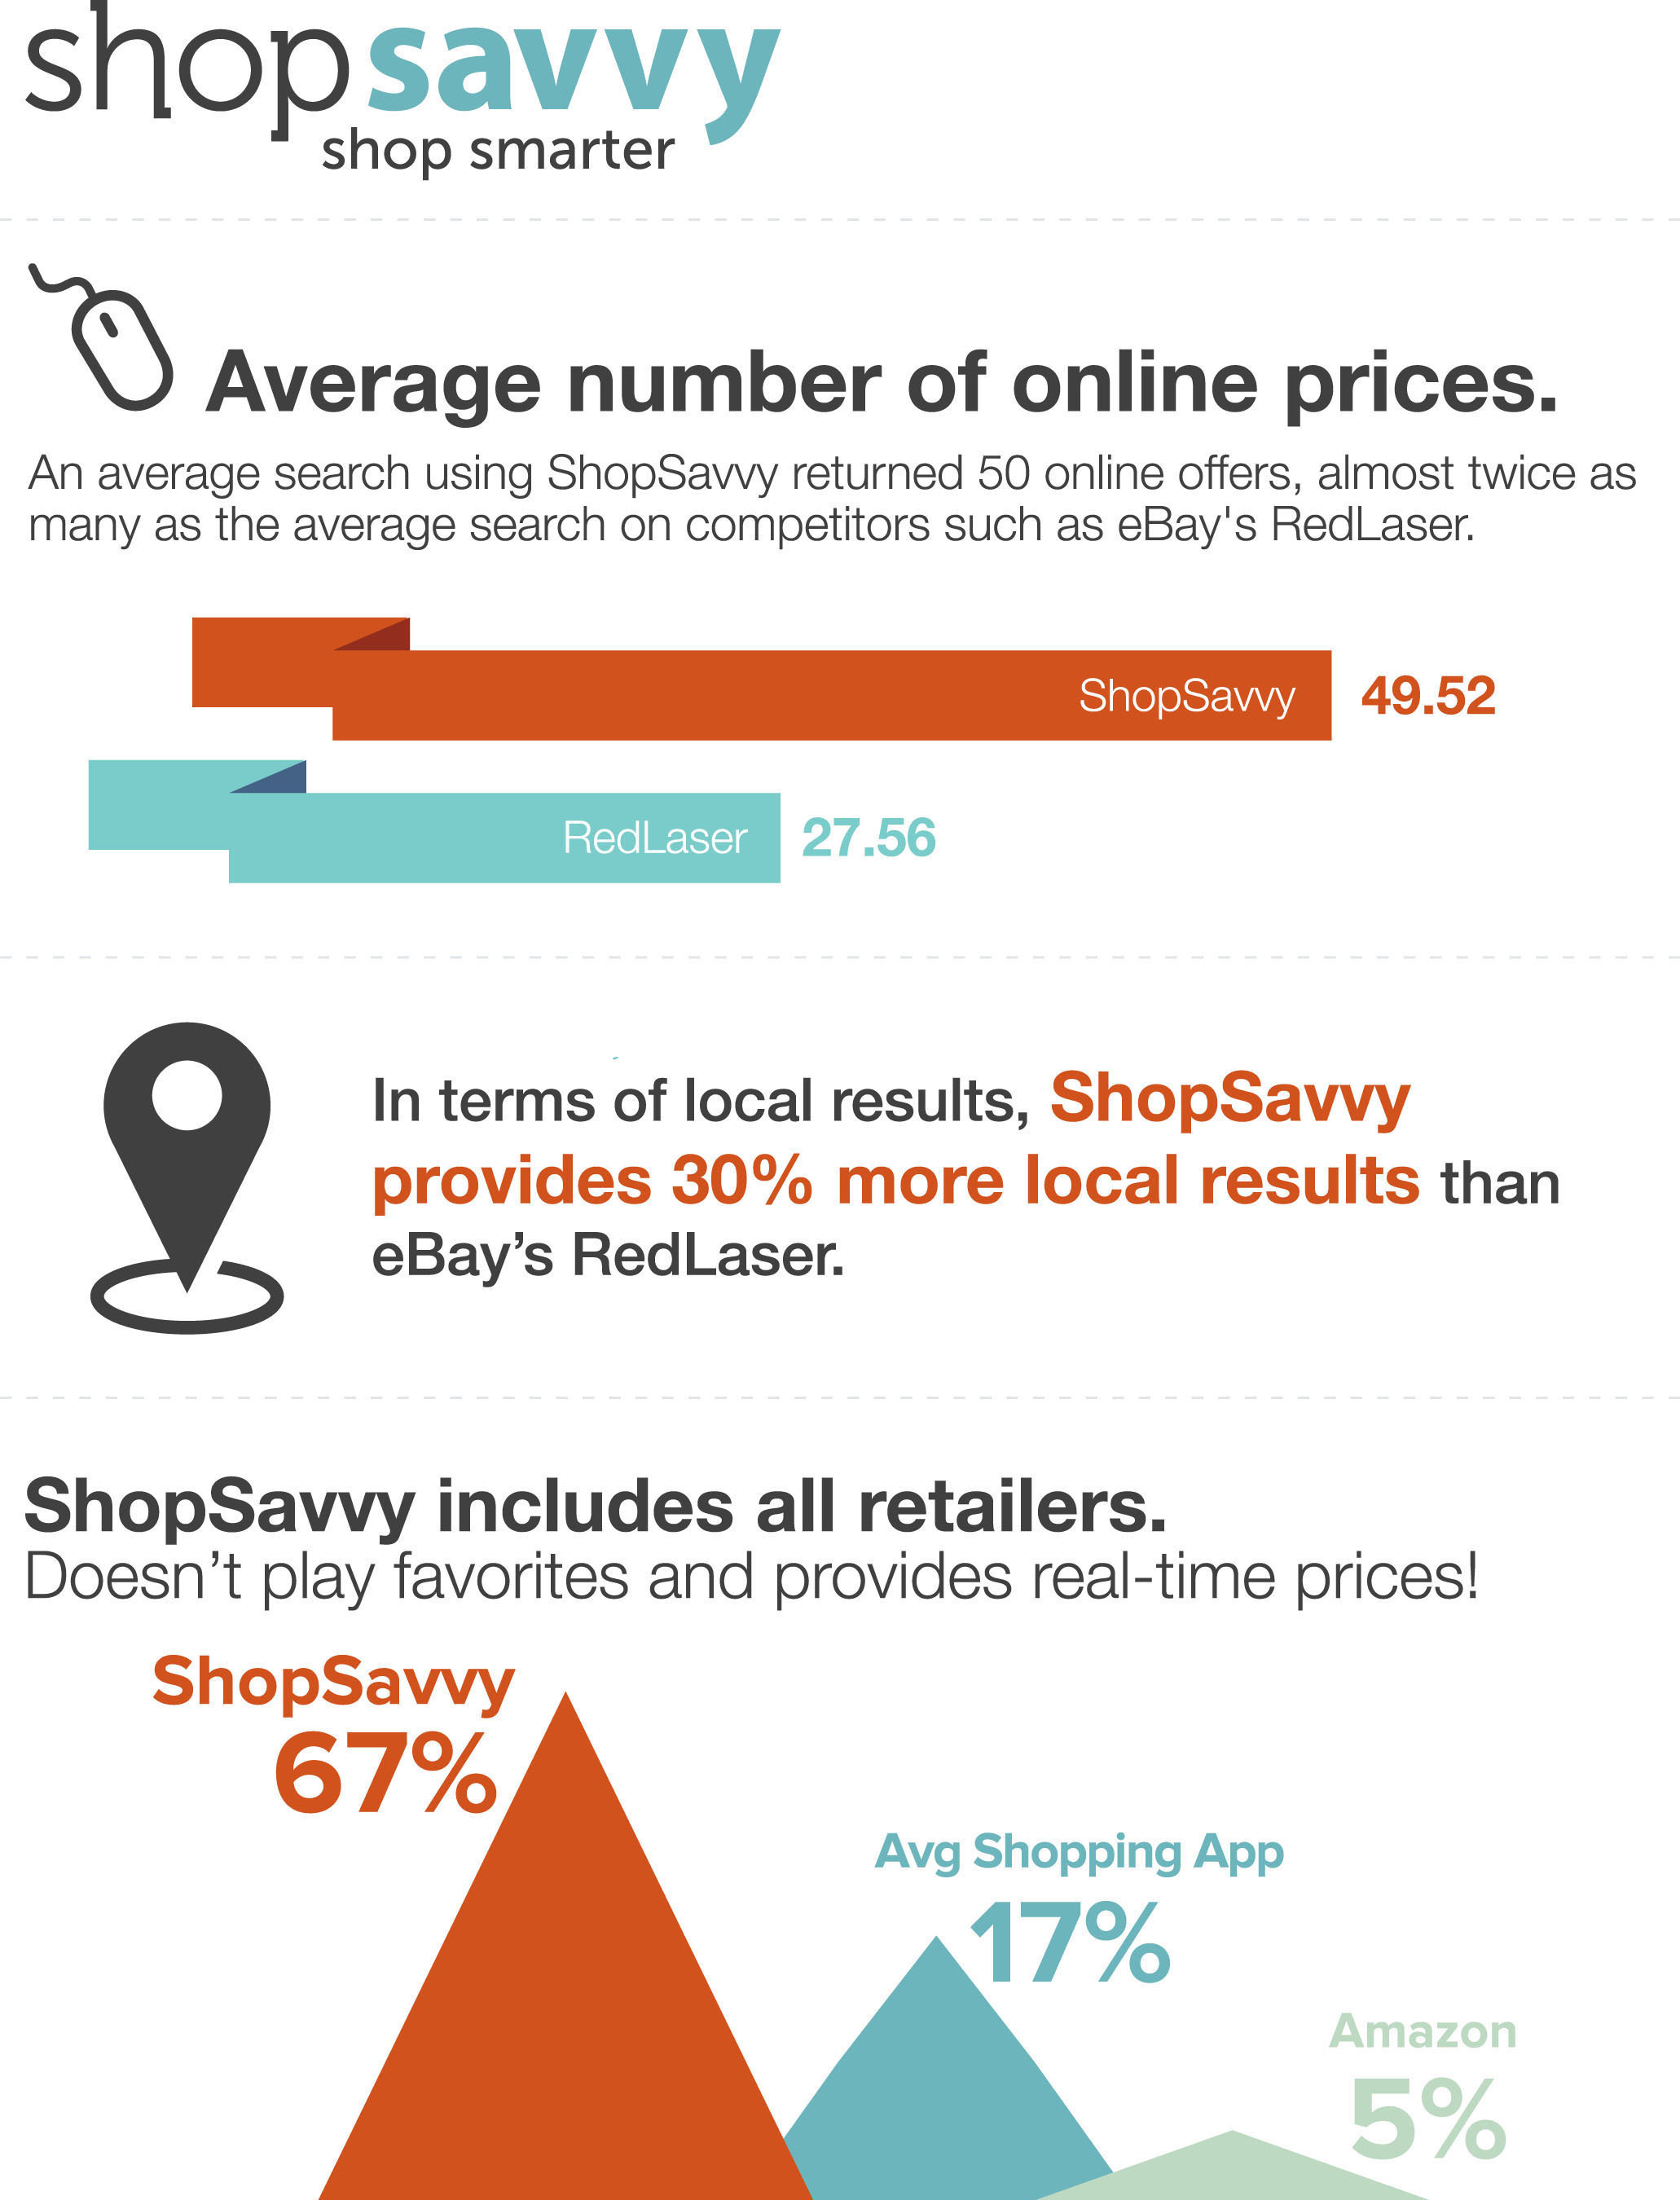 New Big Data solution, Product Cloud 2.0, empowers ShopSavvy to provide its millions of monthly active users with more local store choices, improved product information and better prices than any other shopping platform.  (PRNewsFoto/ShopSavvy)